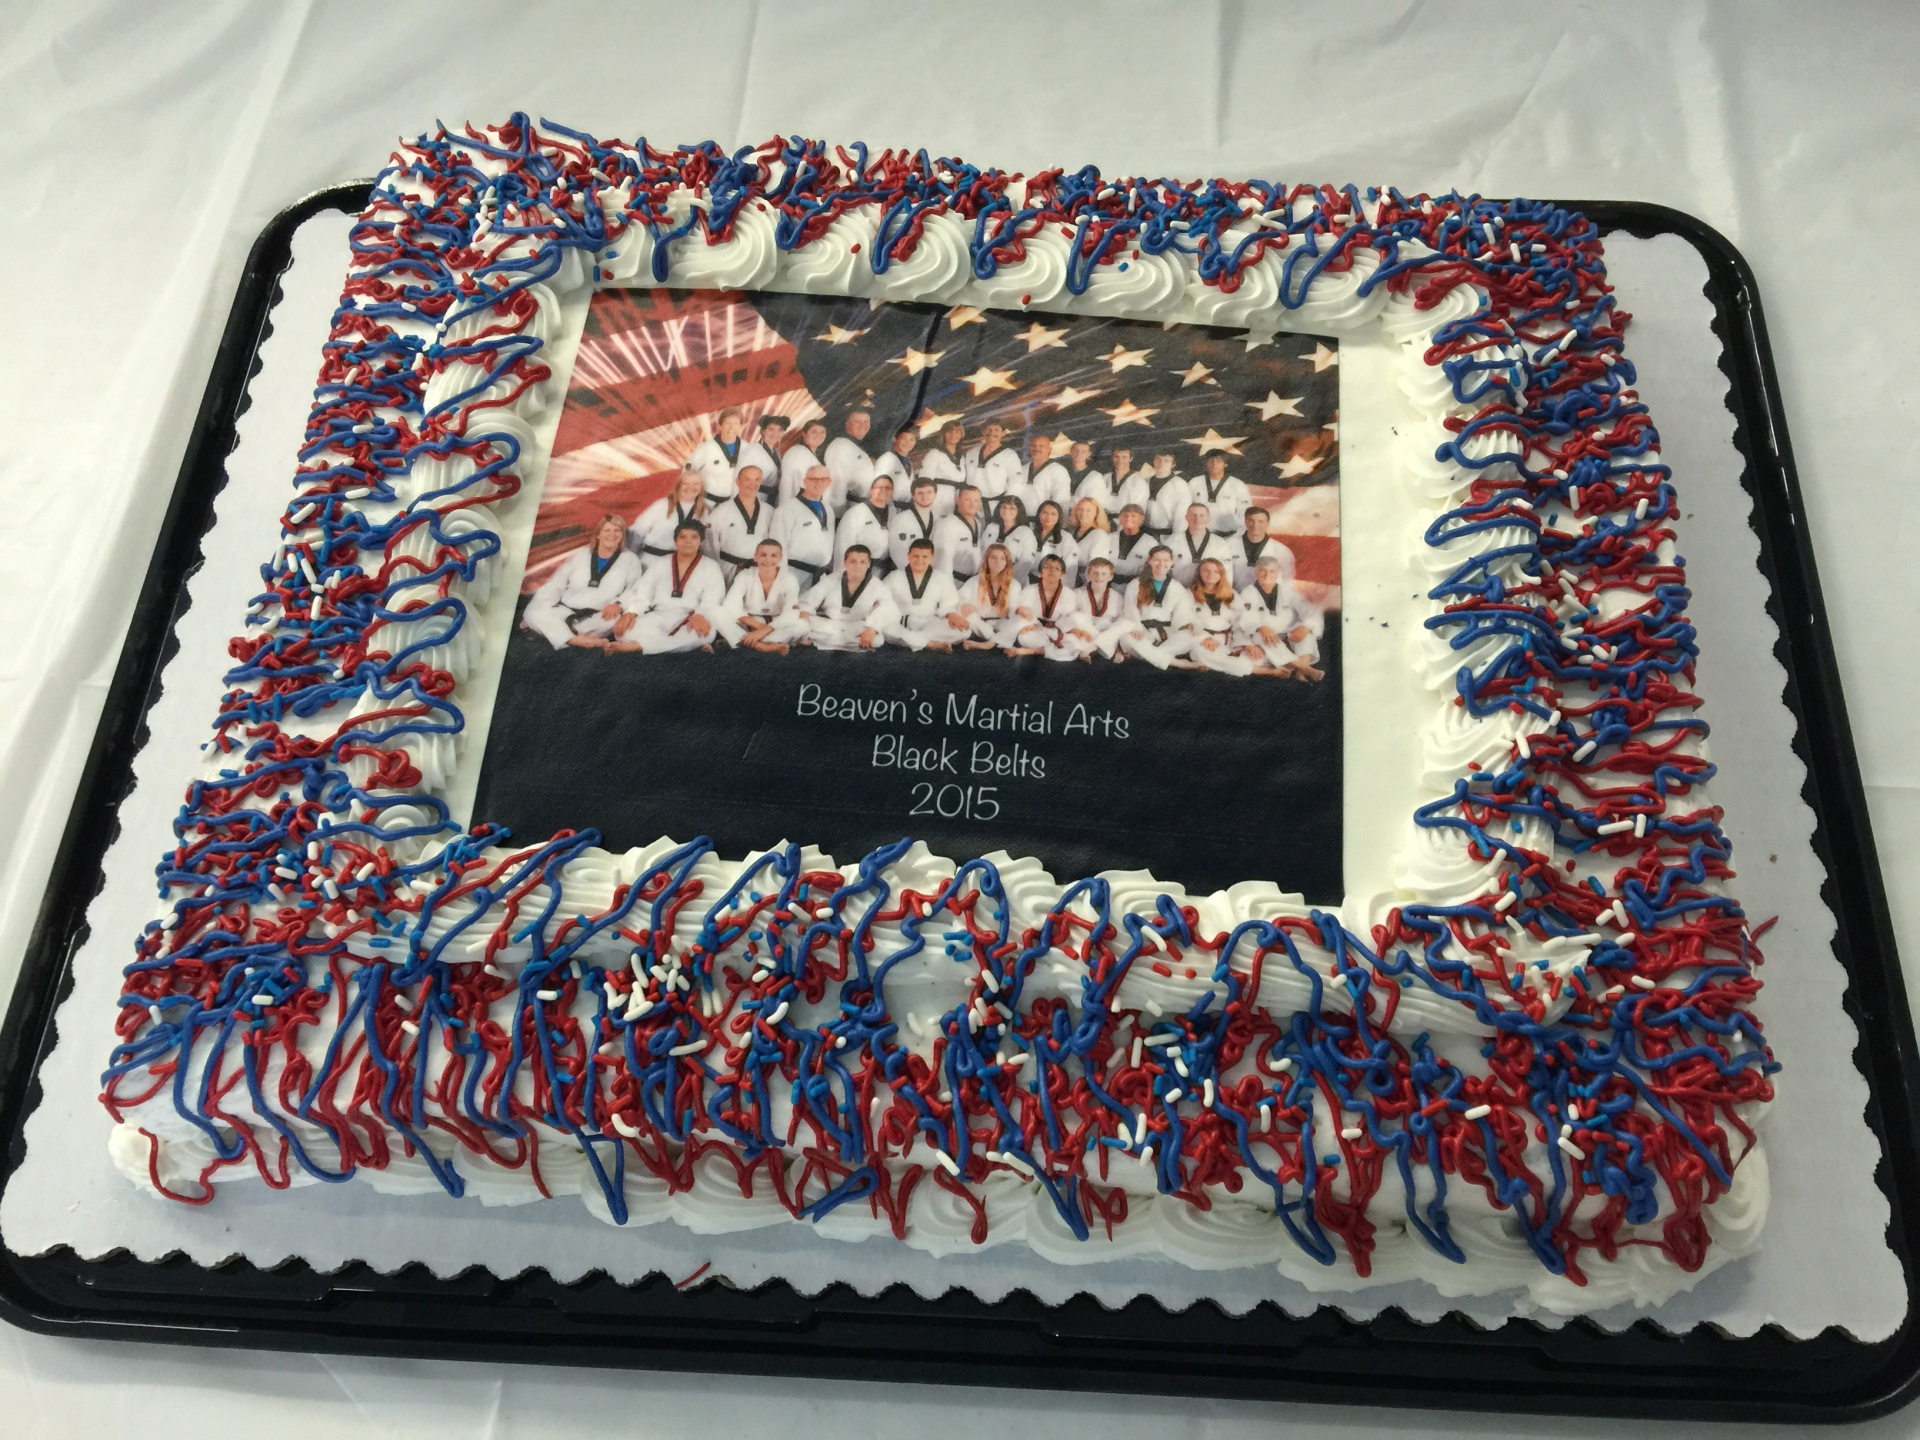 Black Belts 2015 Cake